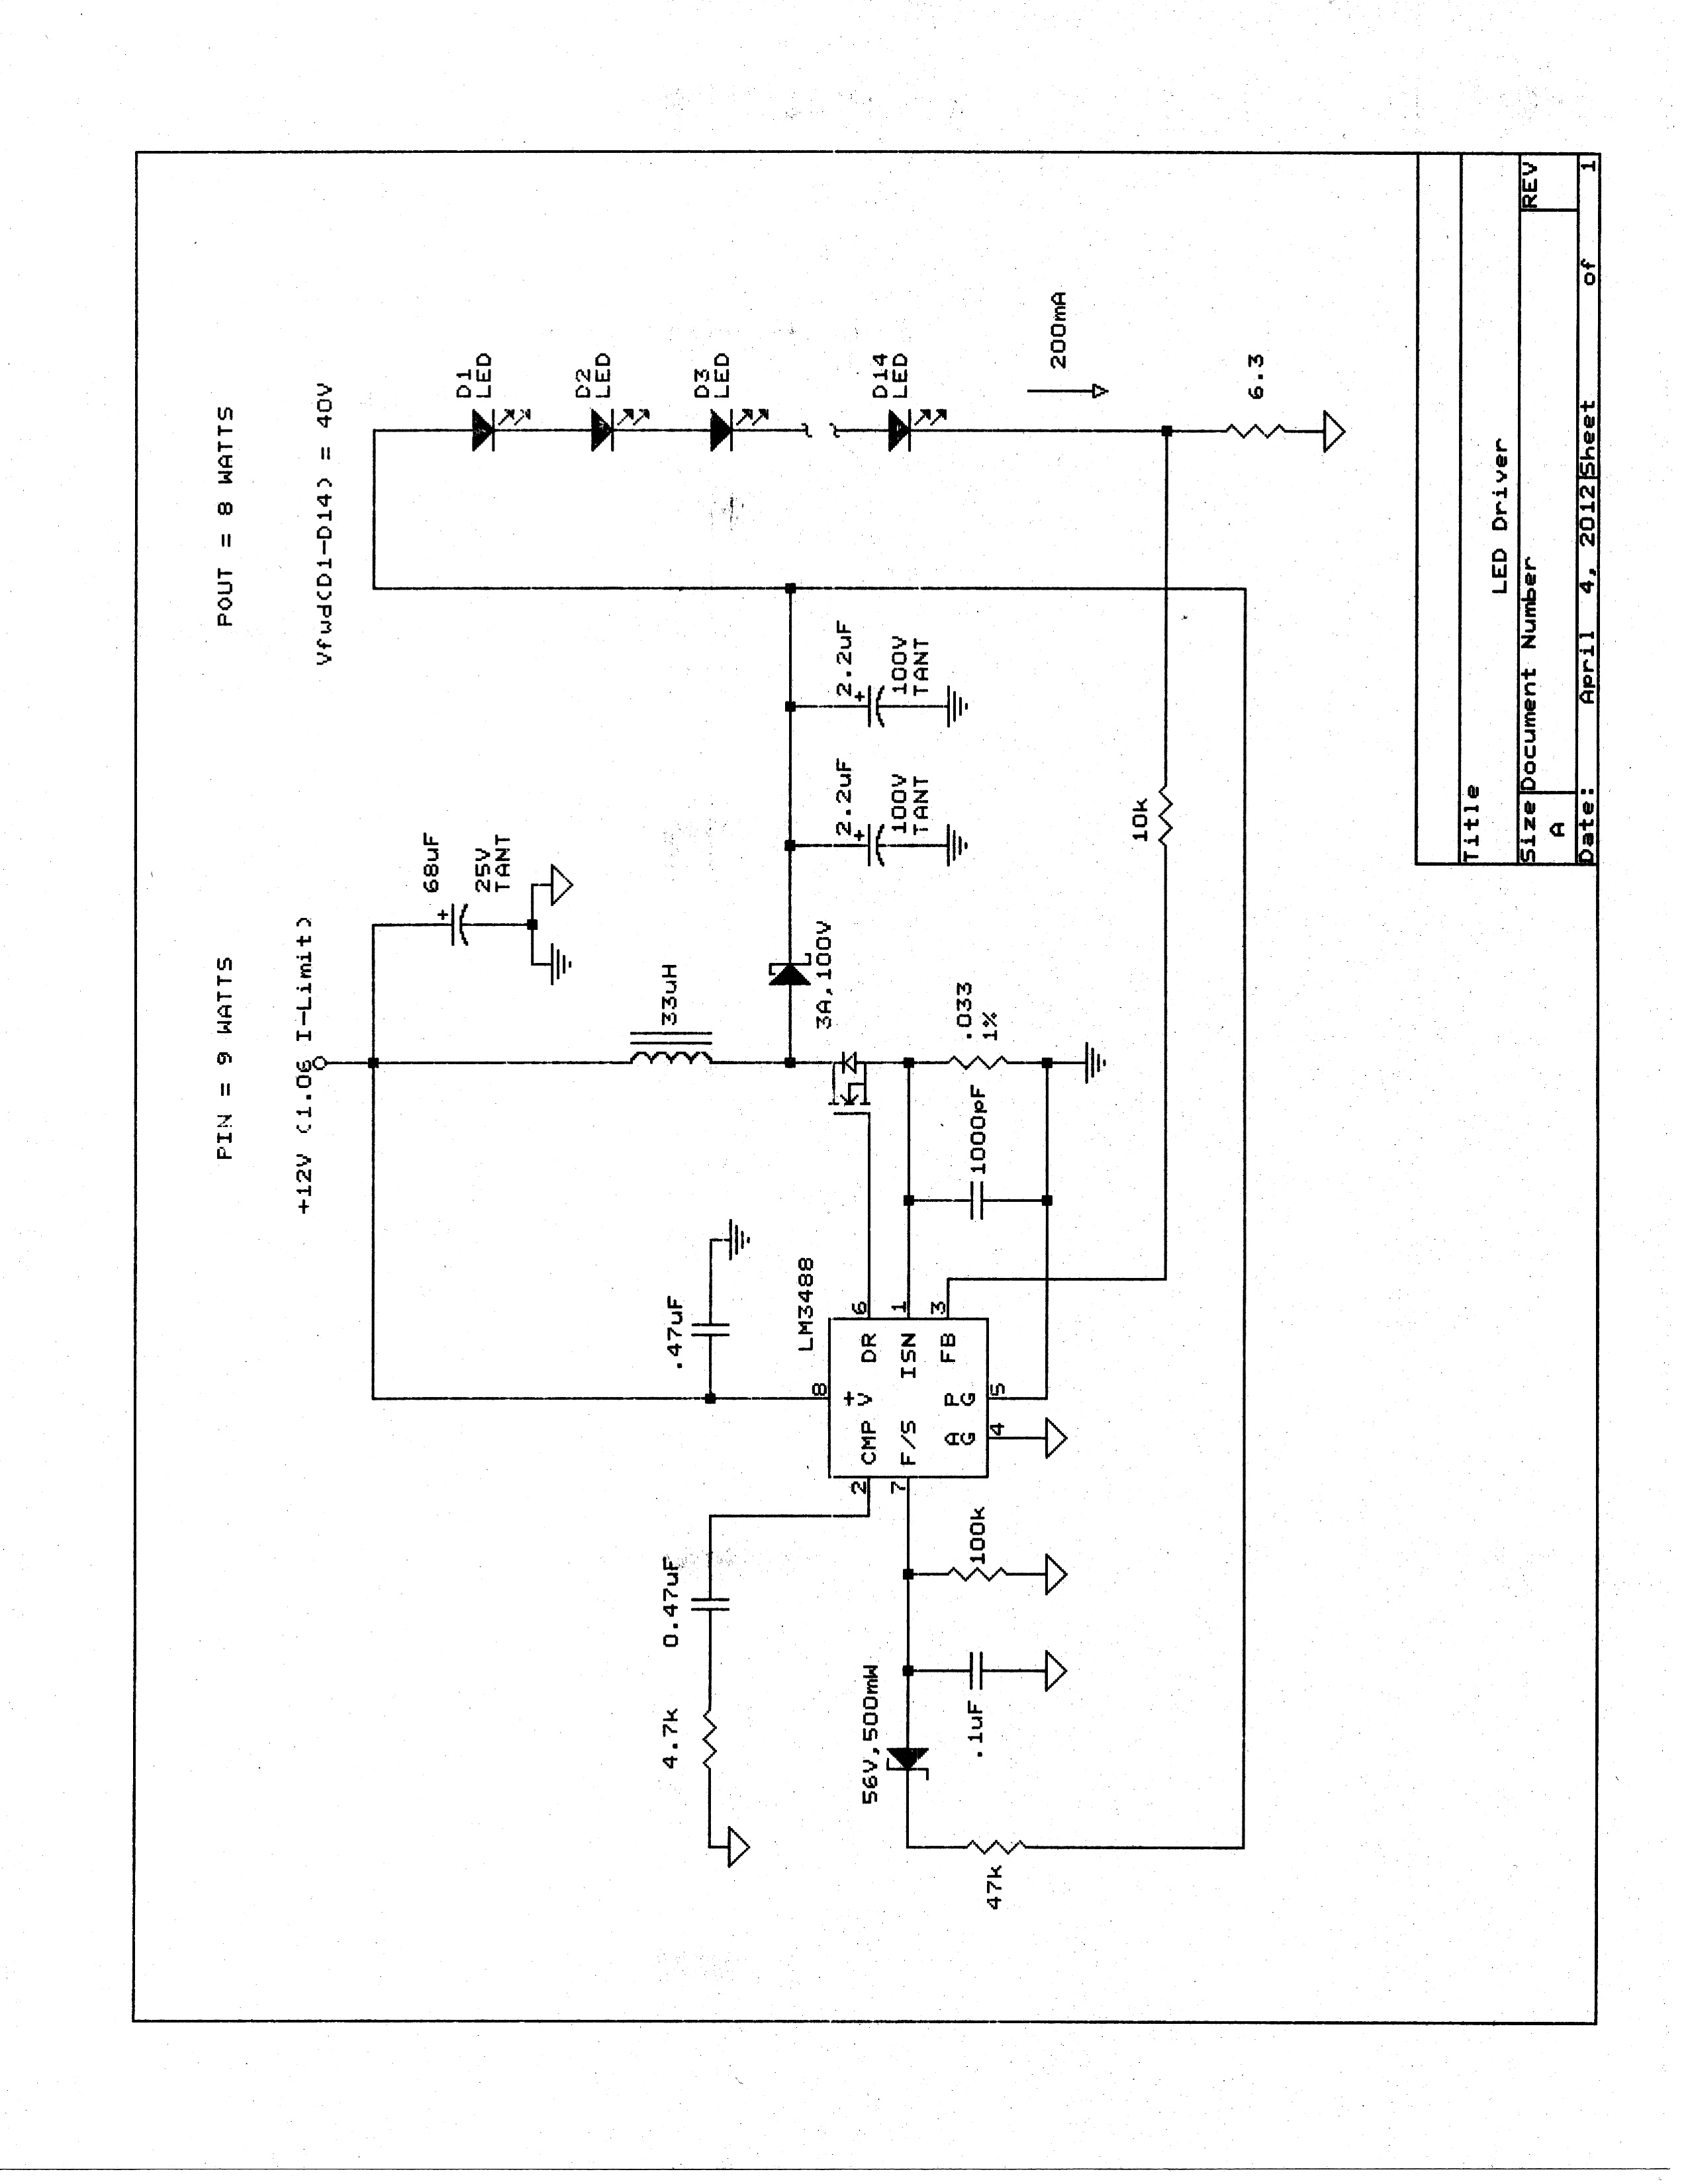 Resolved Lm3488 Possible Latch Up Mode Power Management Forum Supply Non Isolated Dc Ti E2e Vin Steve